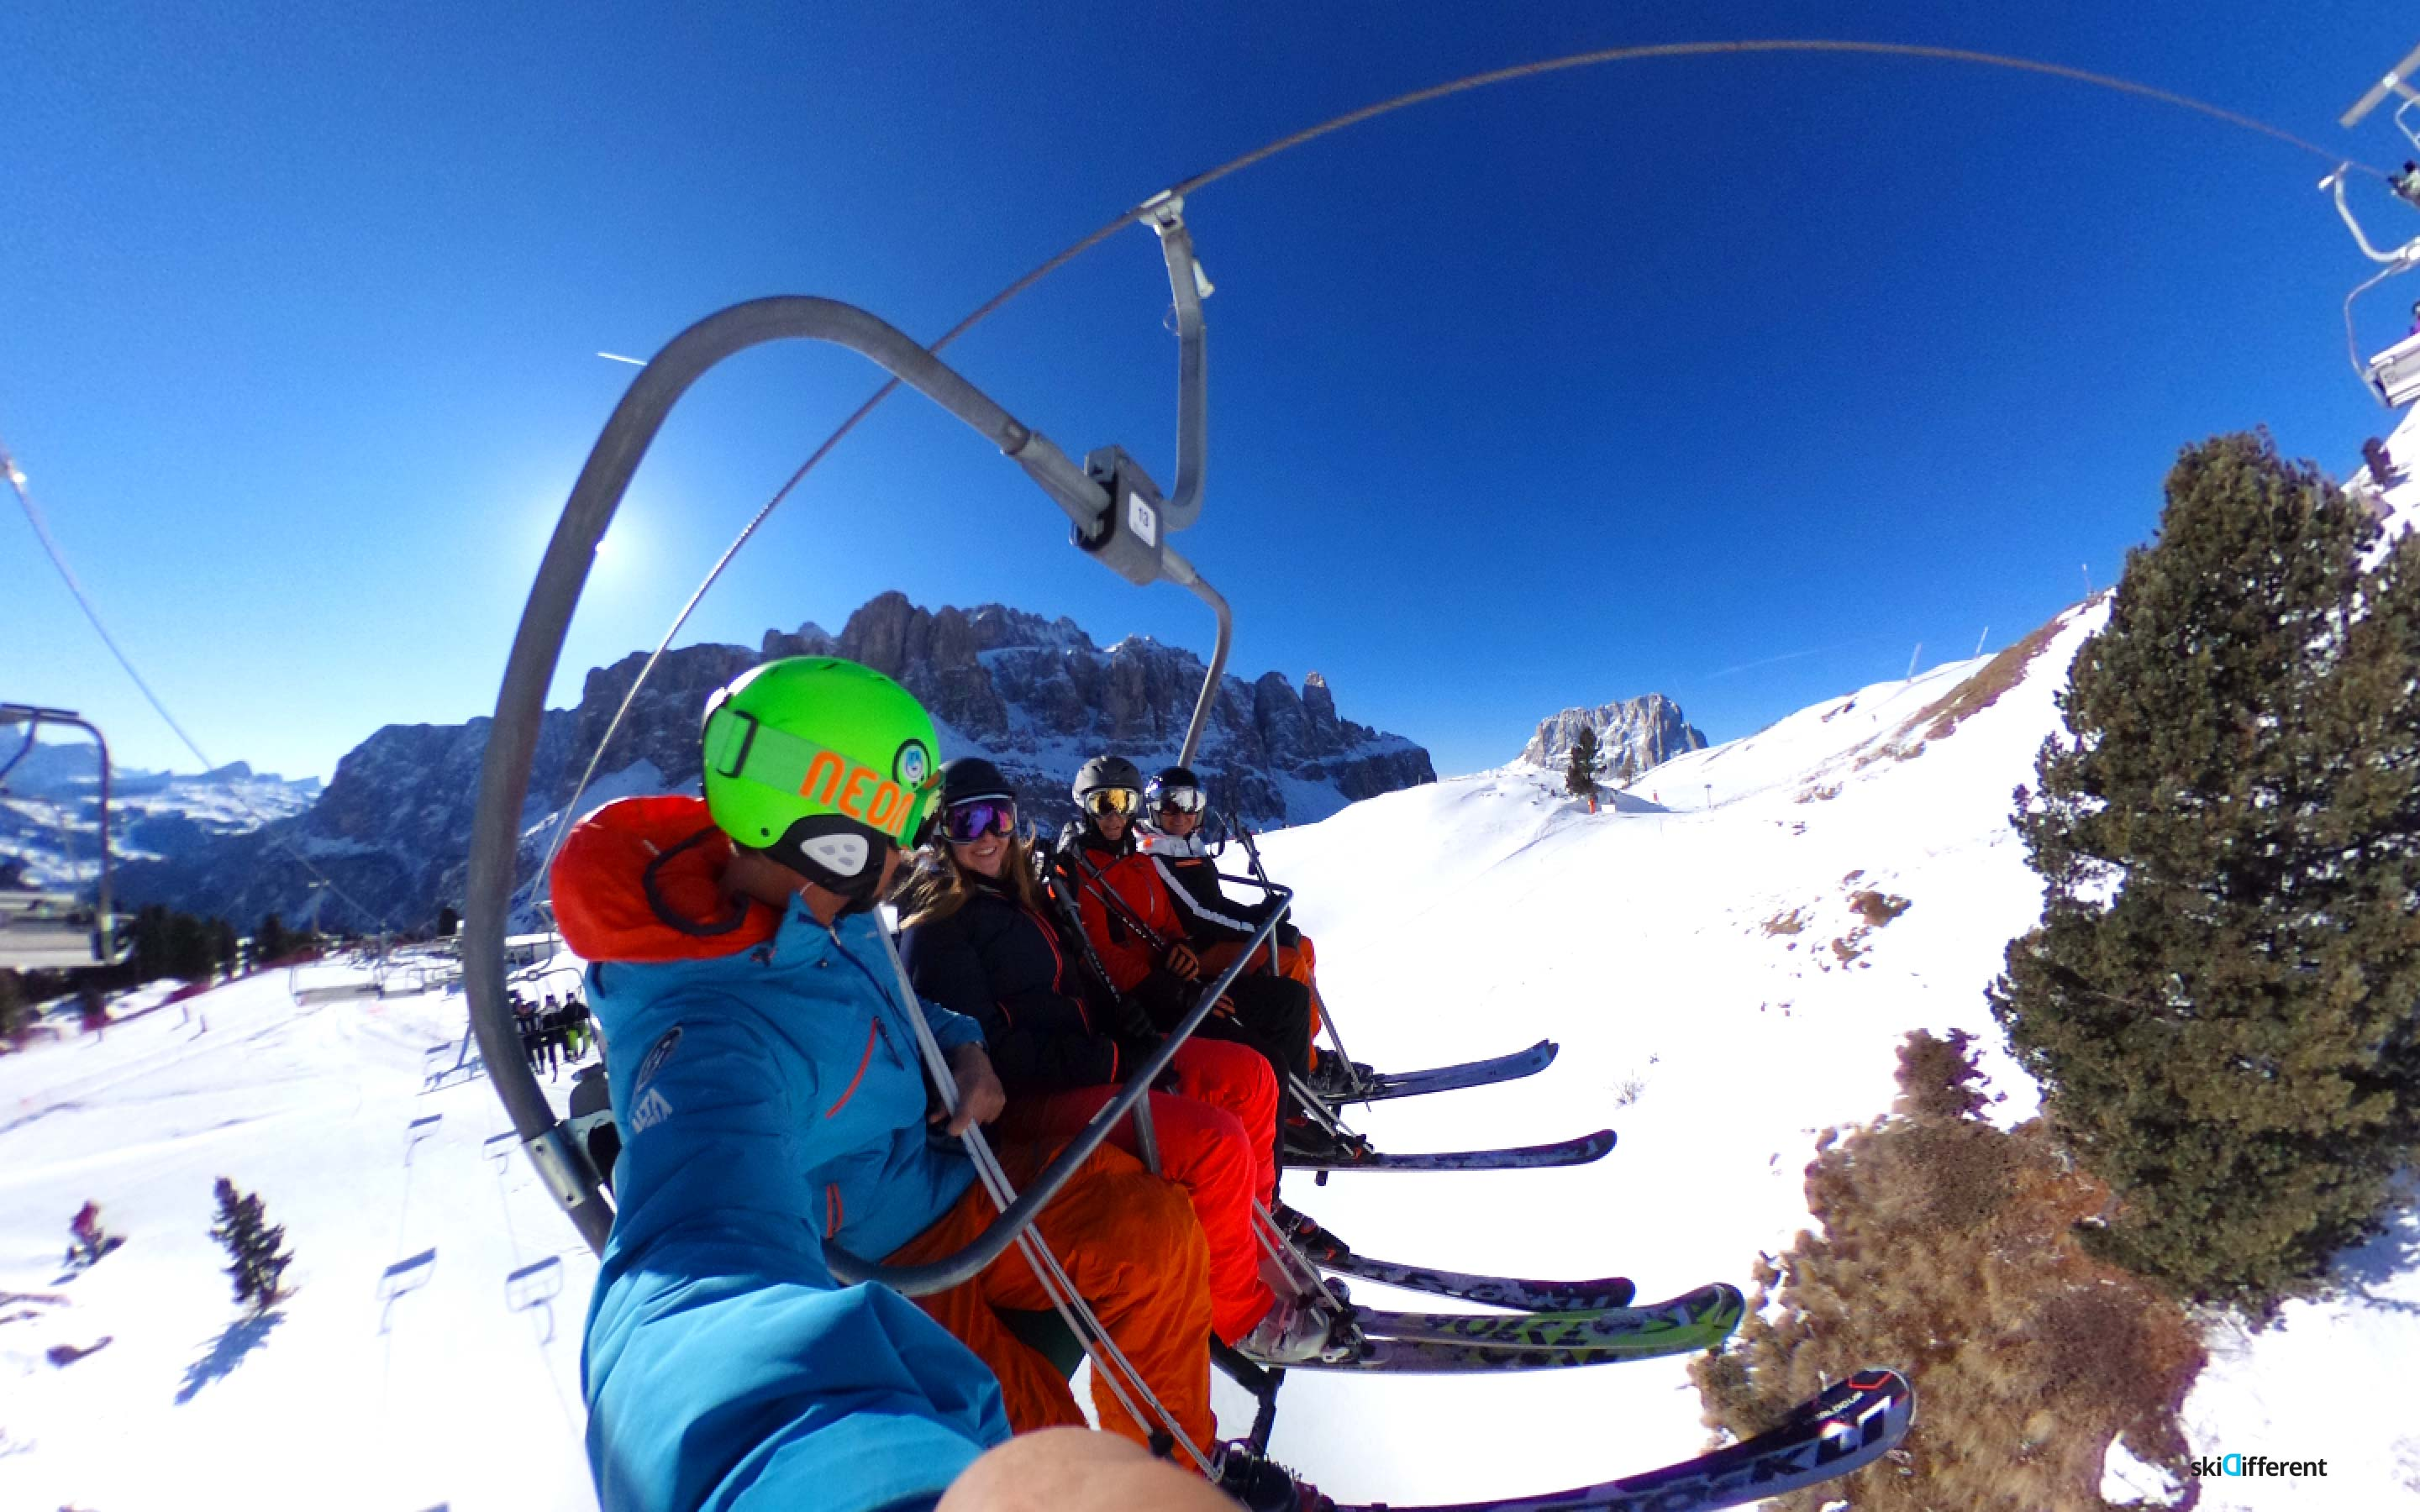 Passo Gardena Skidifferent People